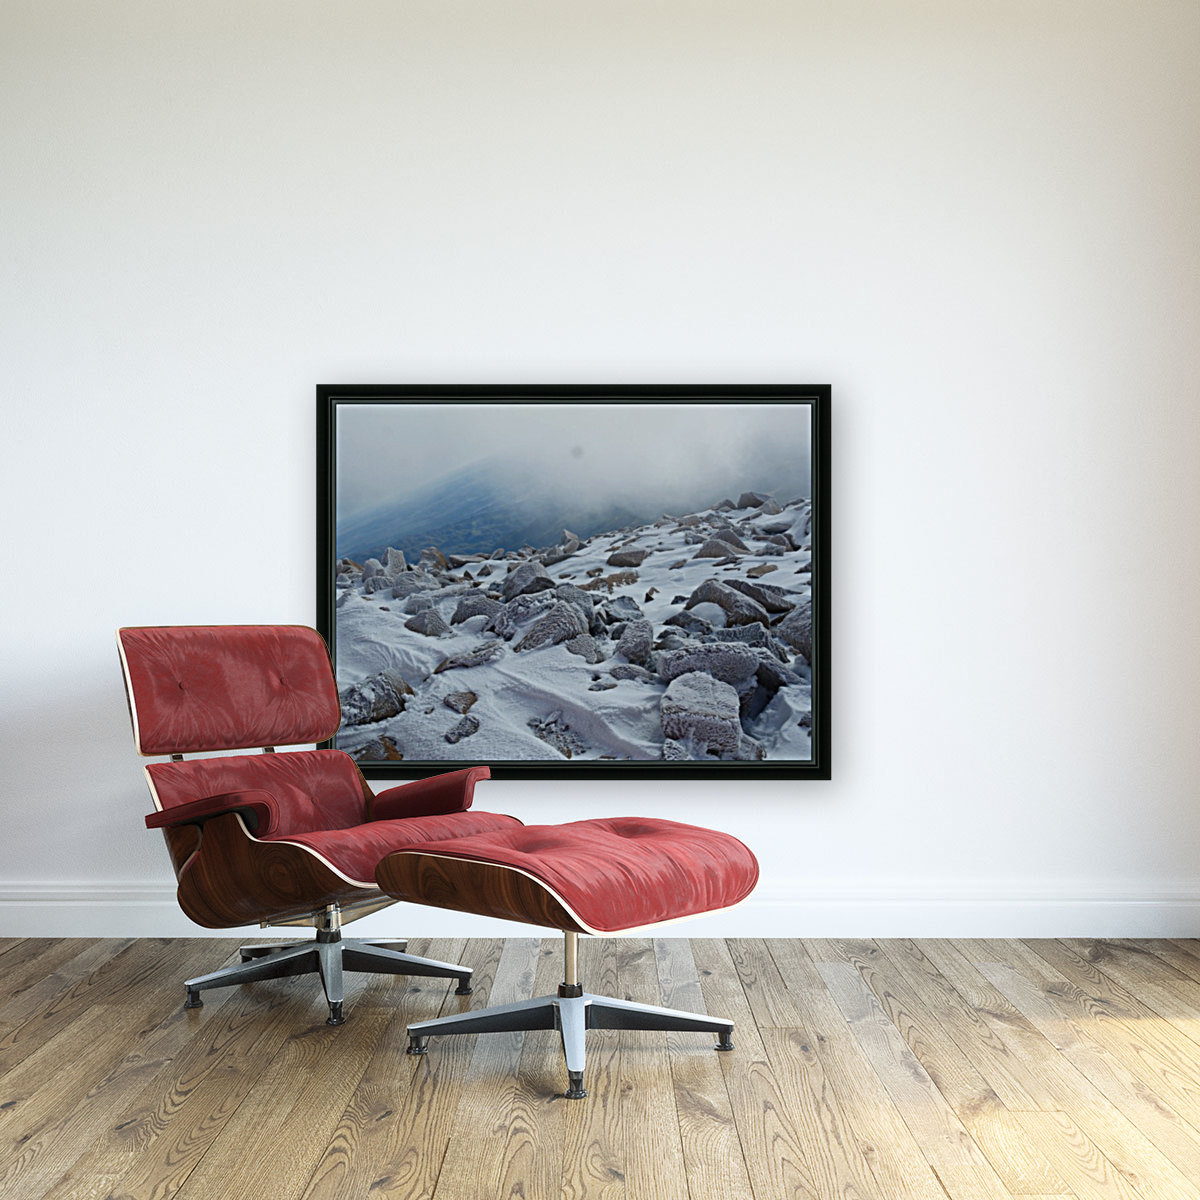 Mountainside with Snow-covered Rocks  Art